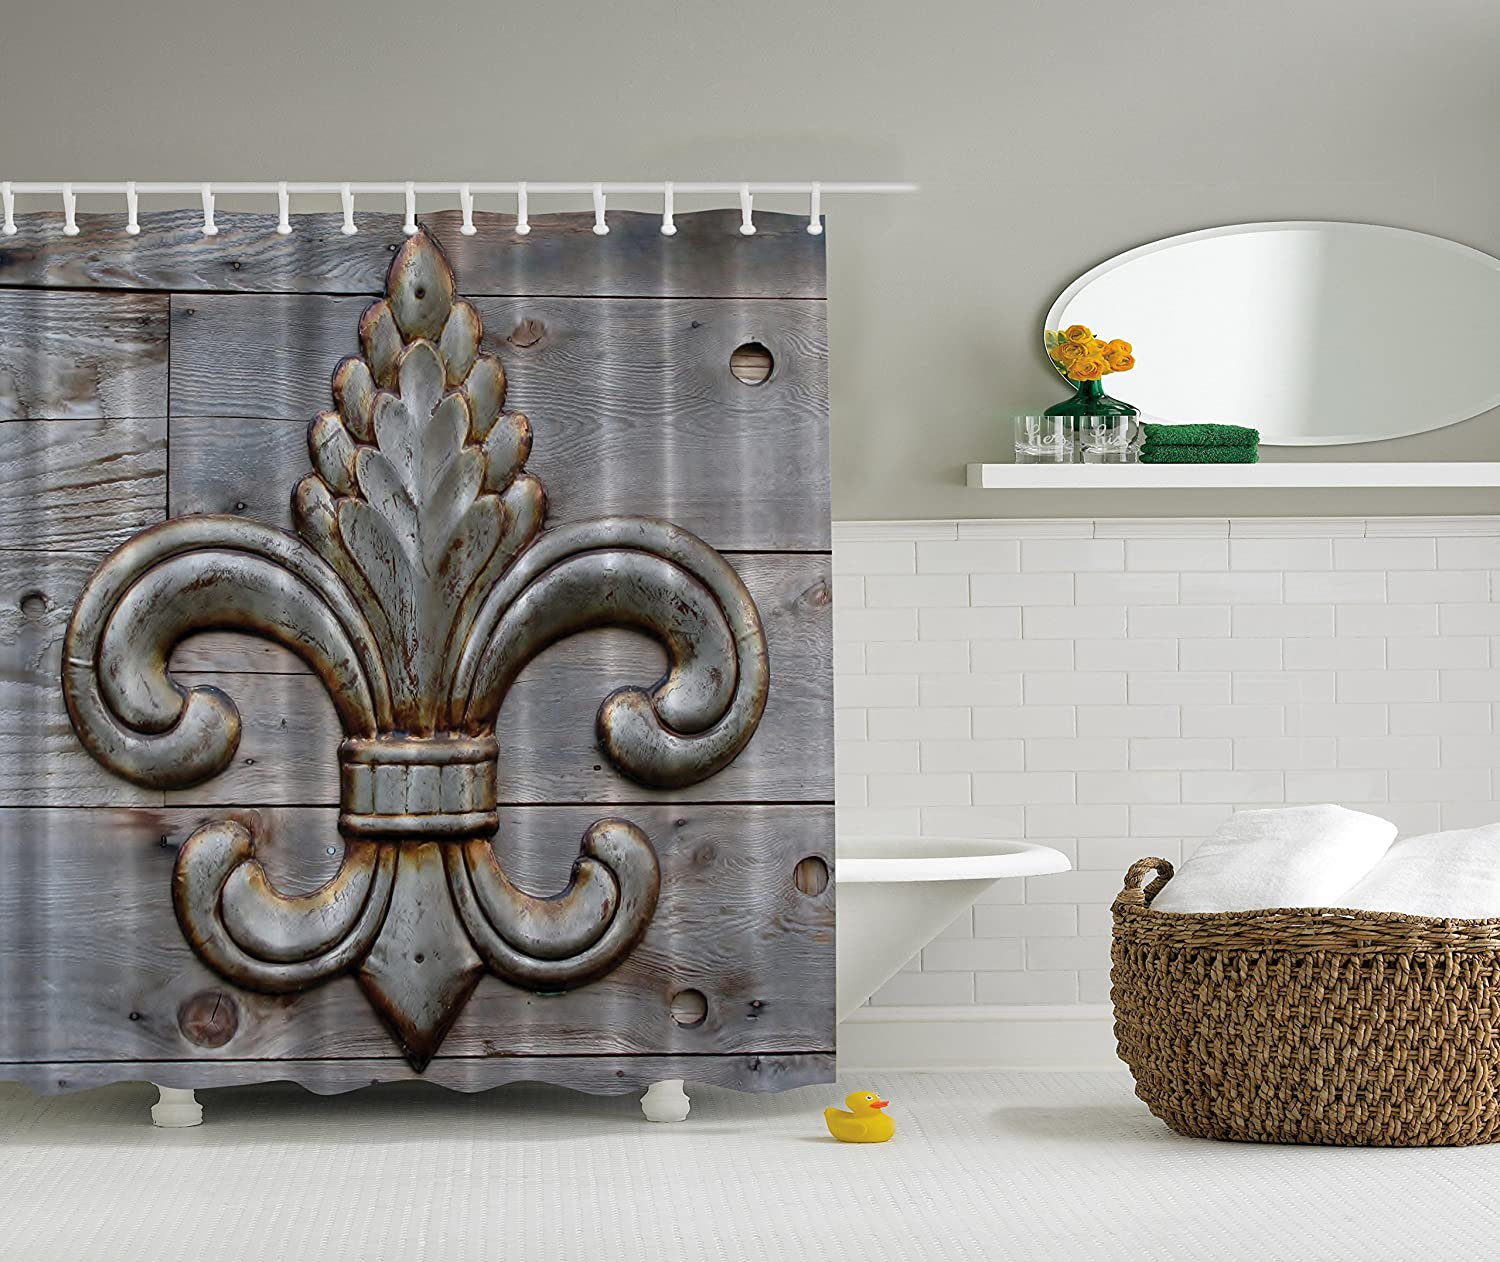 Amazon Fleur De Lis Shower Curtains - Amazon com fleur de lis shower curtain home antiques decor by ambesonne peacock flower lily rusty antiqued wood silver medieval door bell french saints